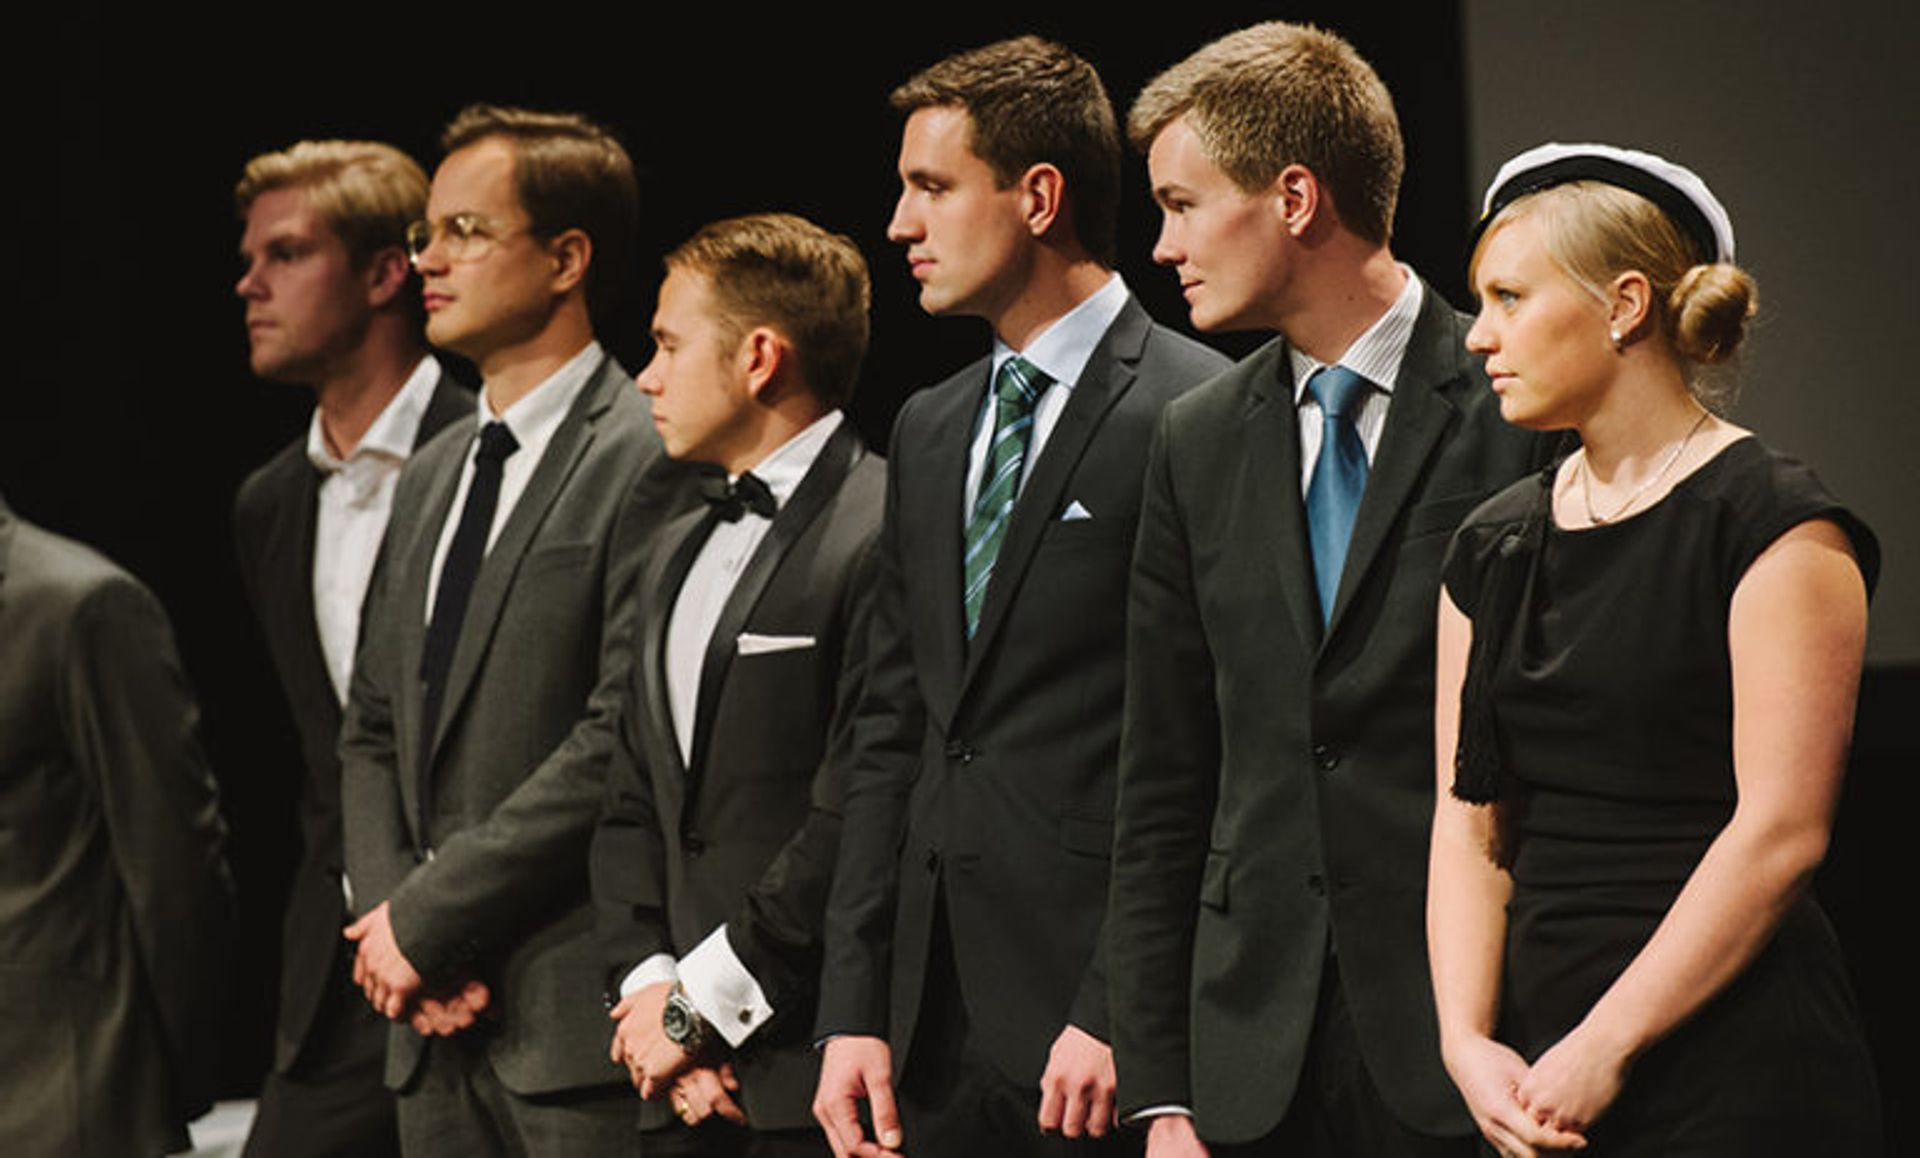 Students dressed up in suits.